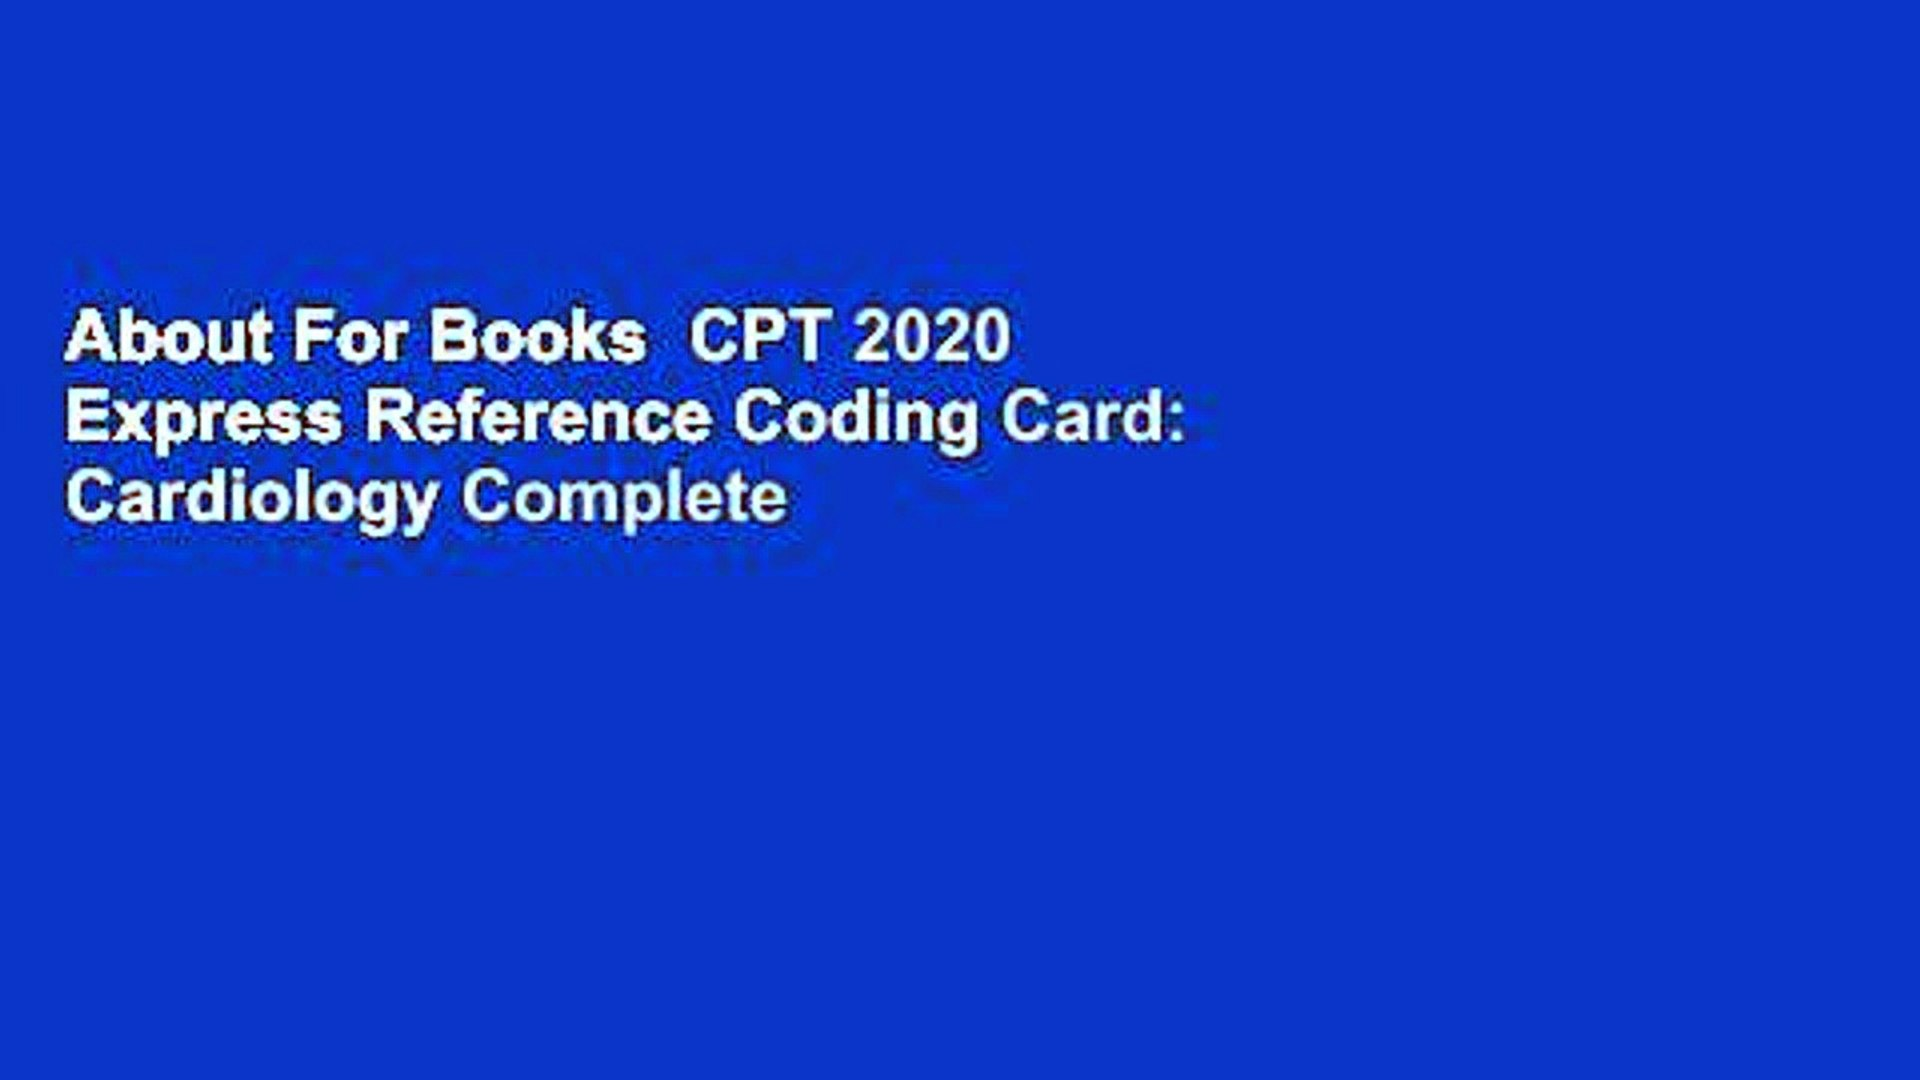 Cpt Modifiers List 2020.About For Books Cpt 2020 Express Reference Coding Card Cardiology Complete